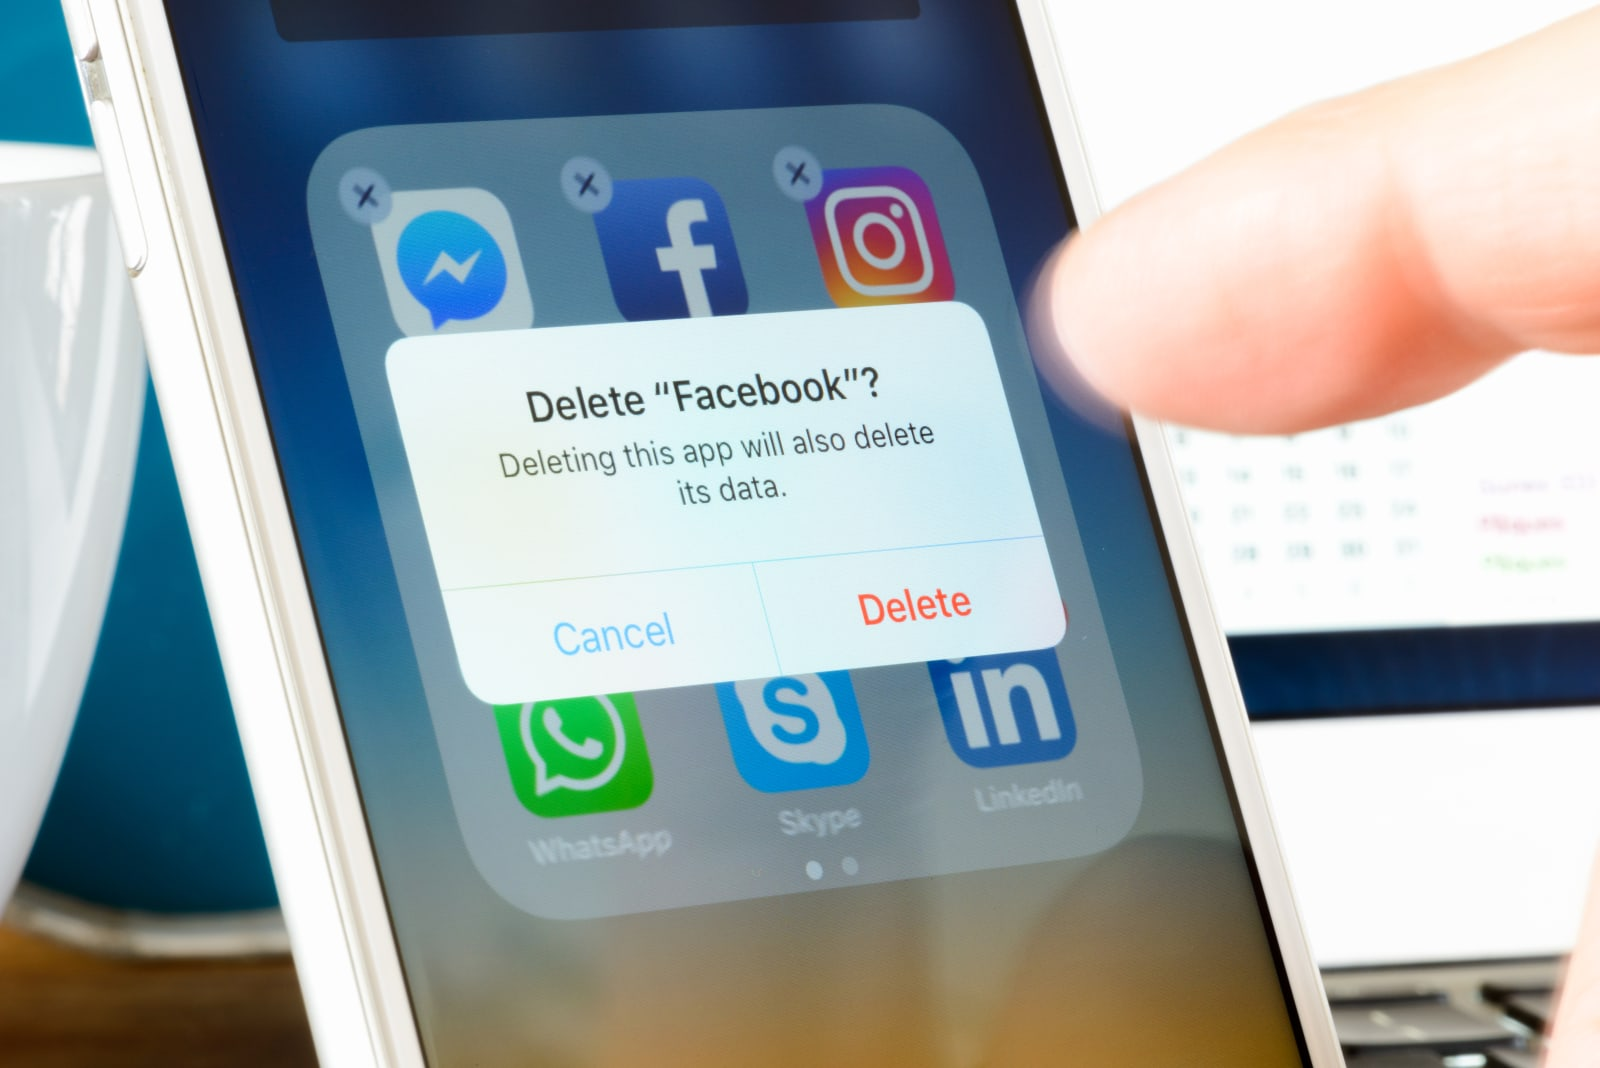 Deleting Facebook App from Smartphone